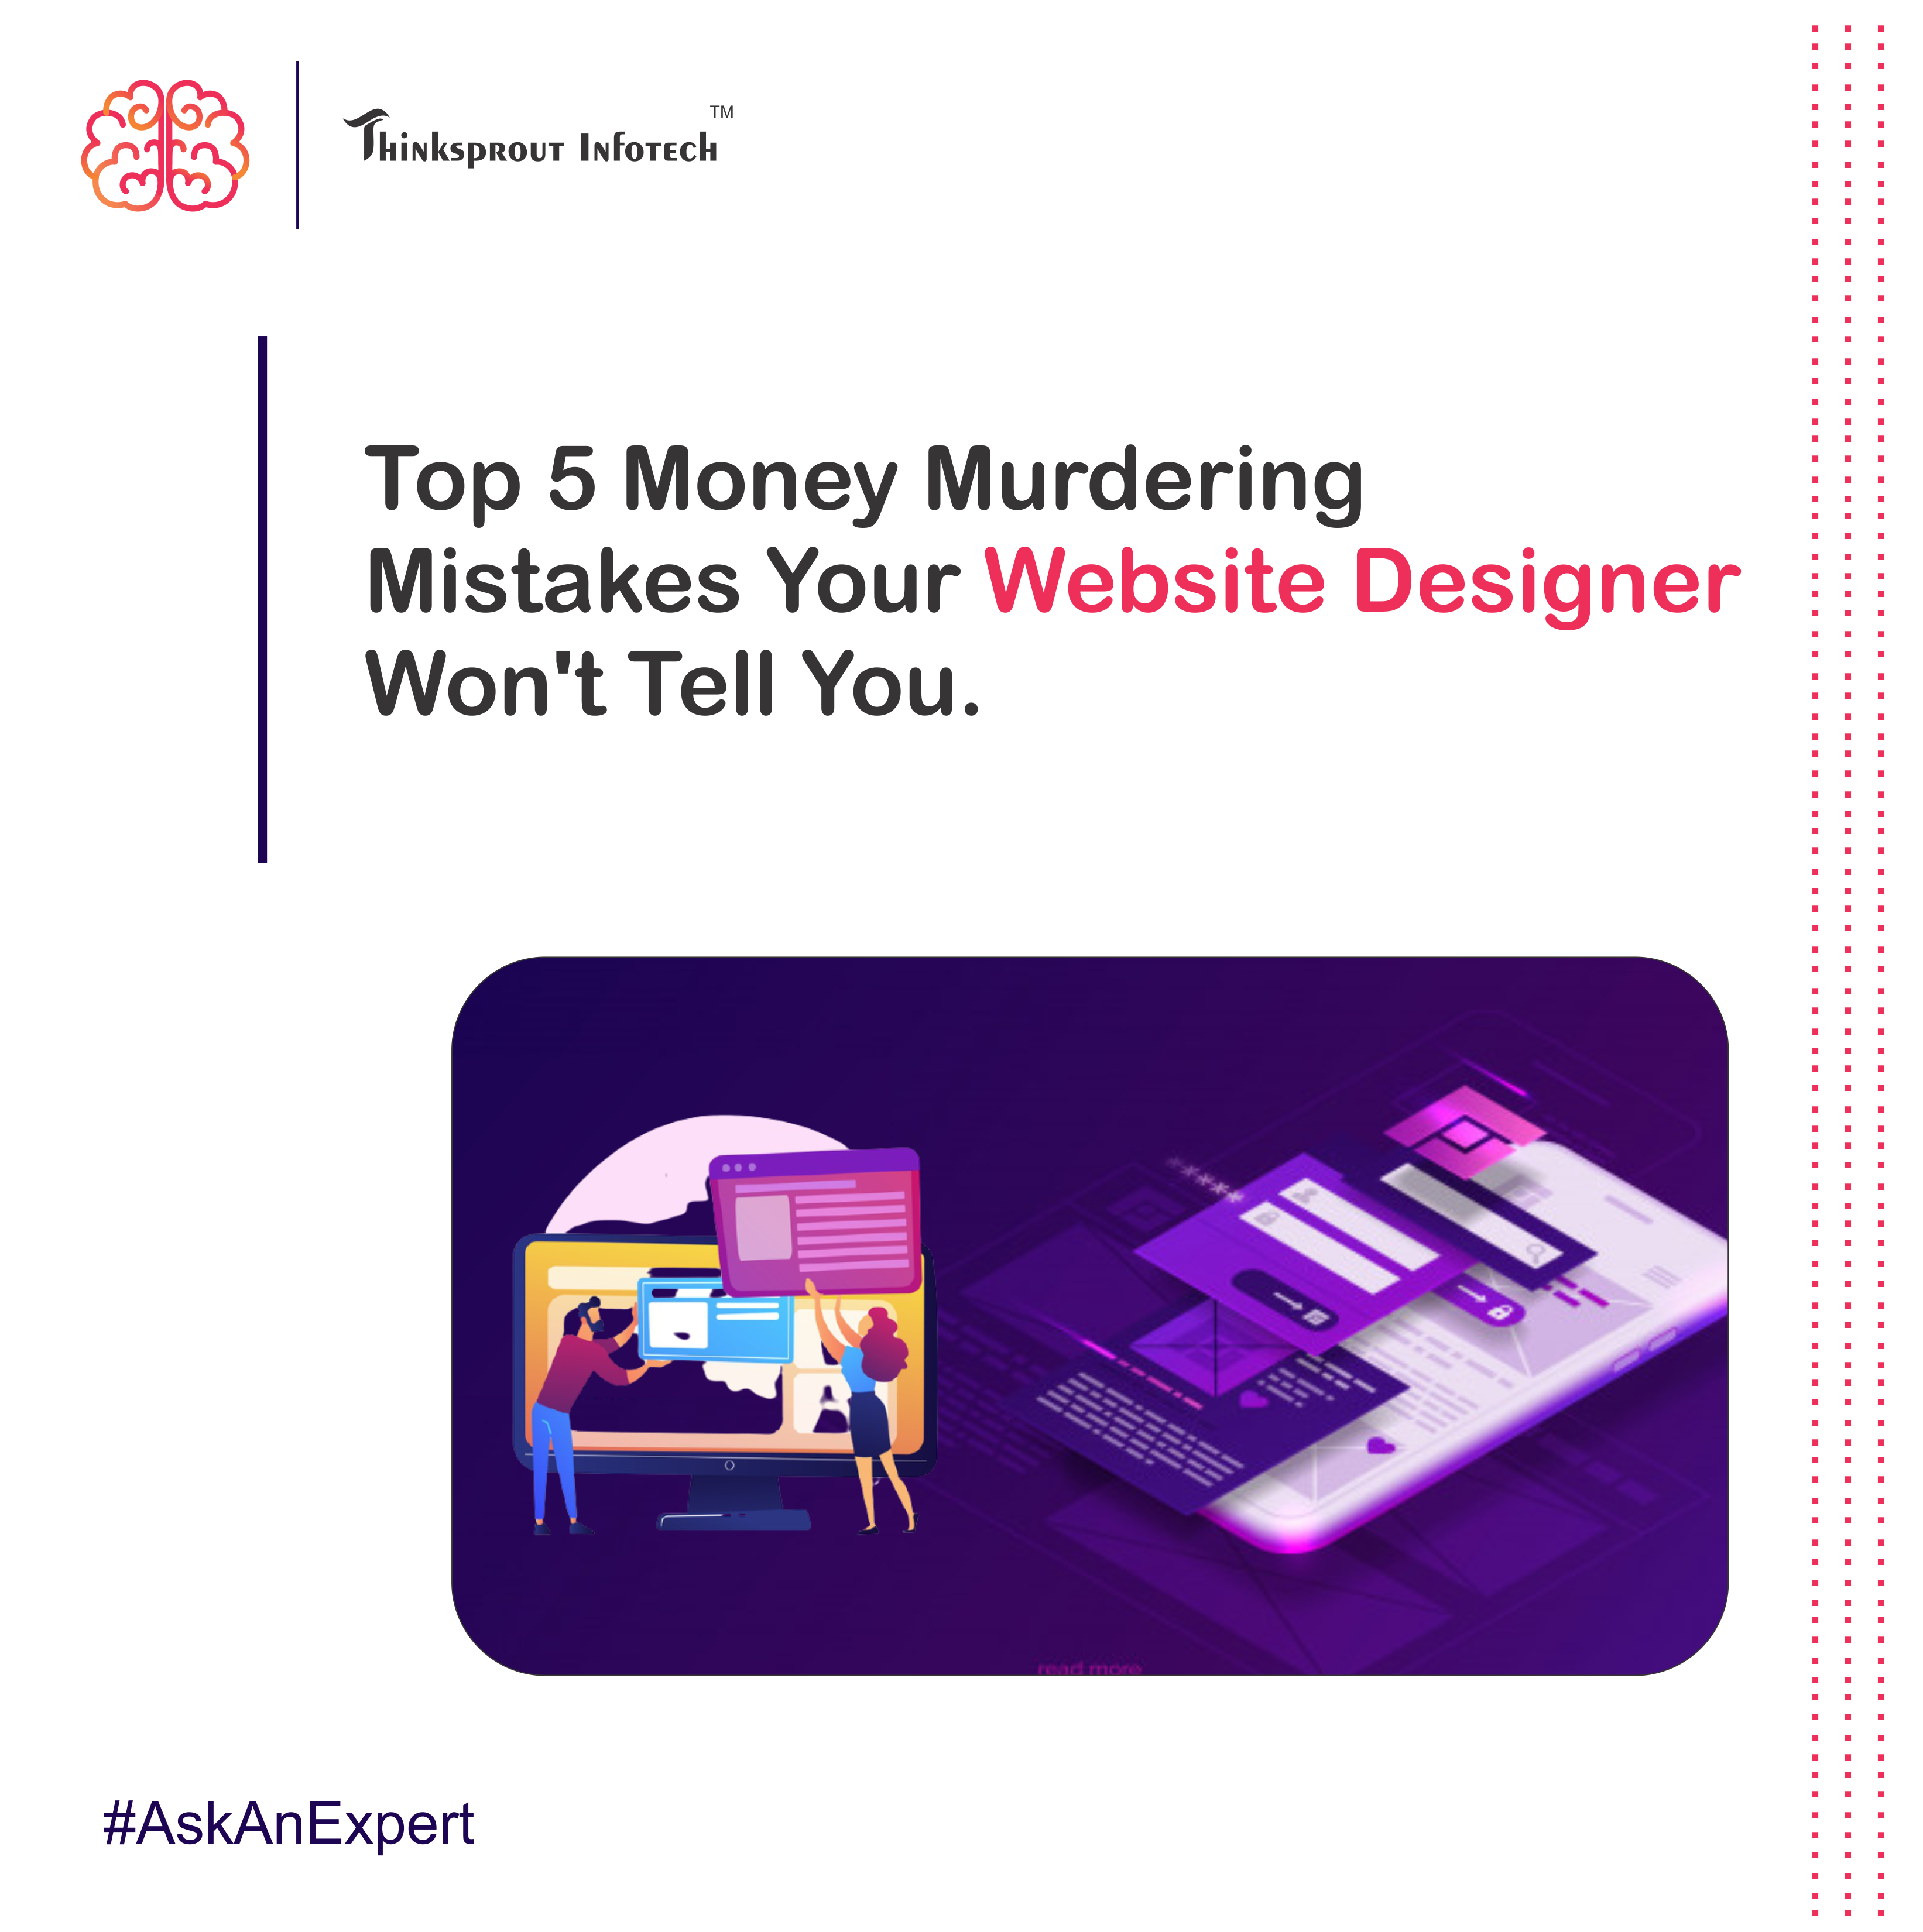 Top 5 Money Murdering Mistakes Your Website Designer Won't Tell You !! (Part 1)